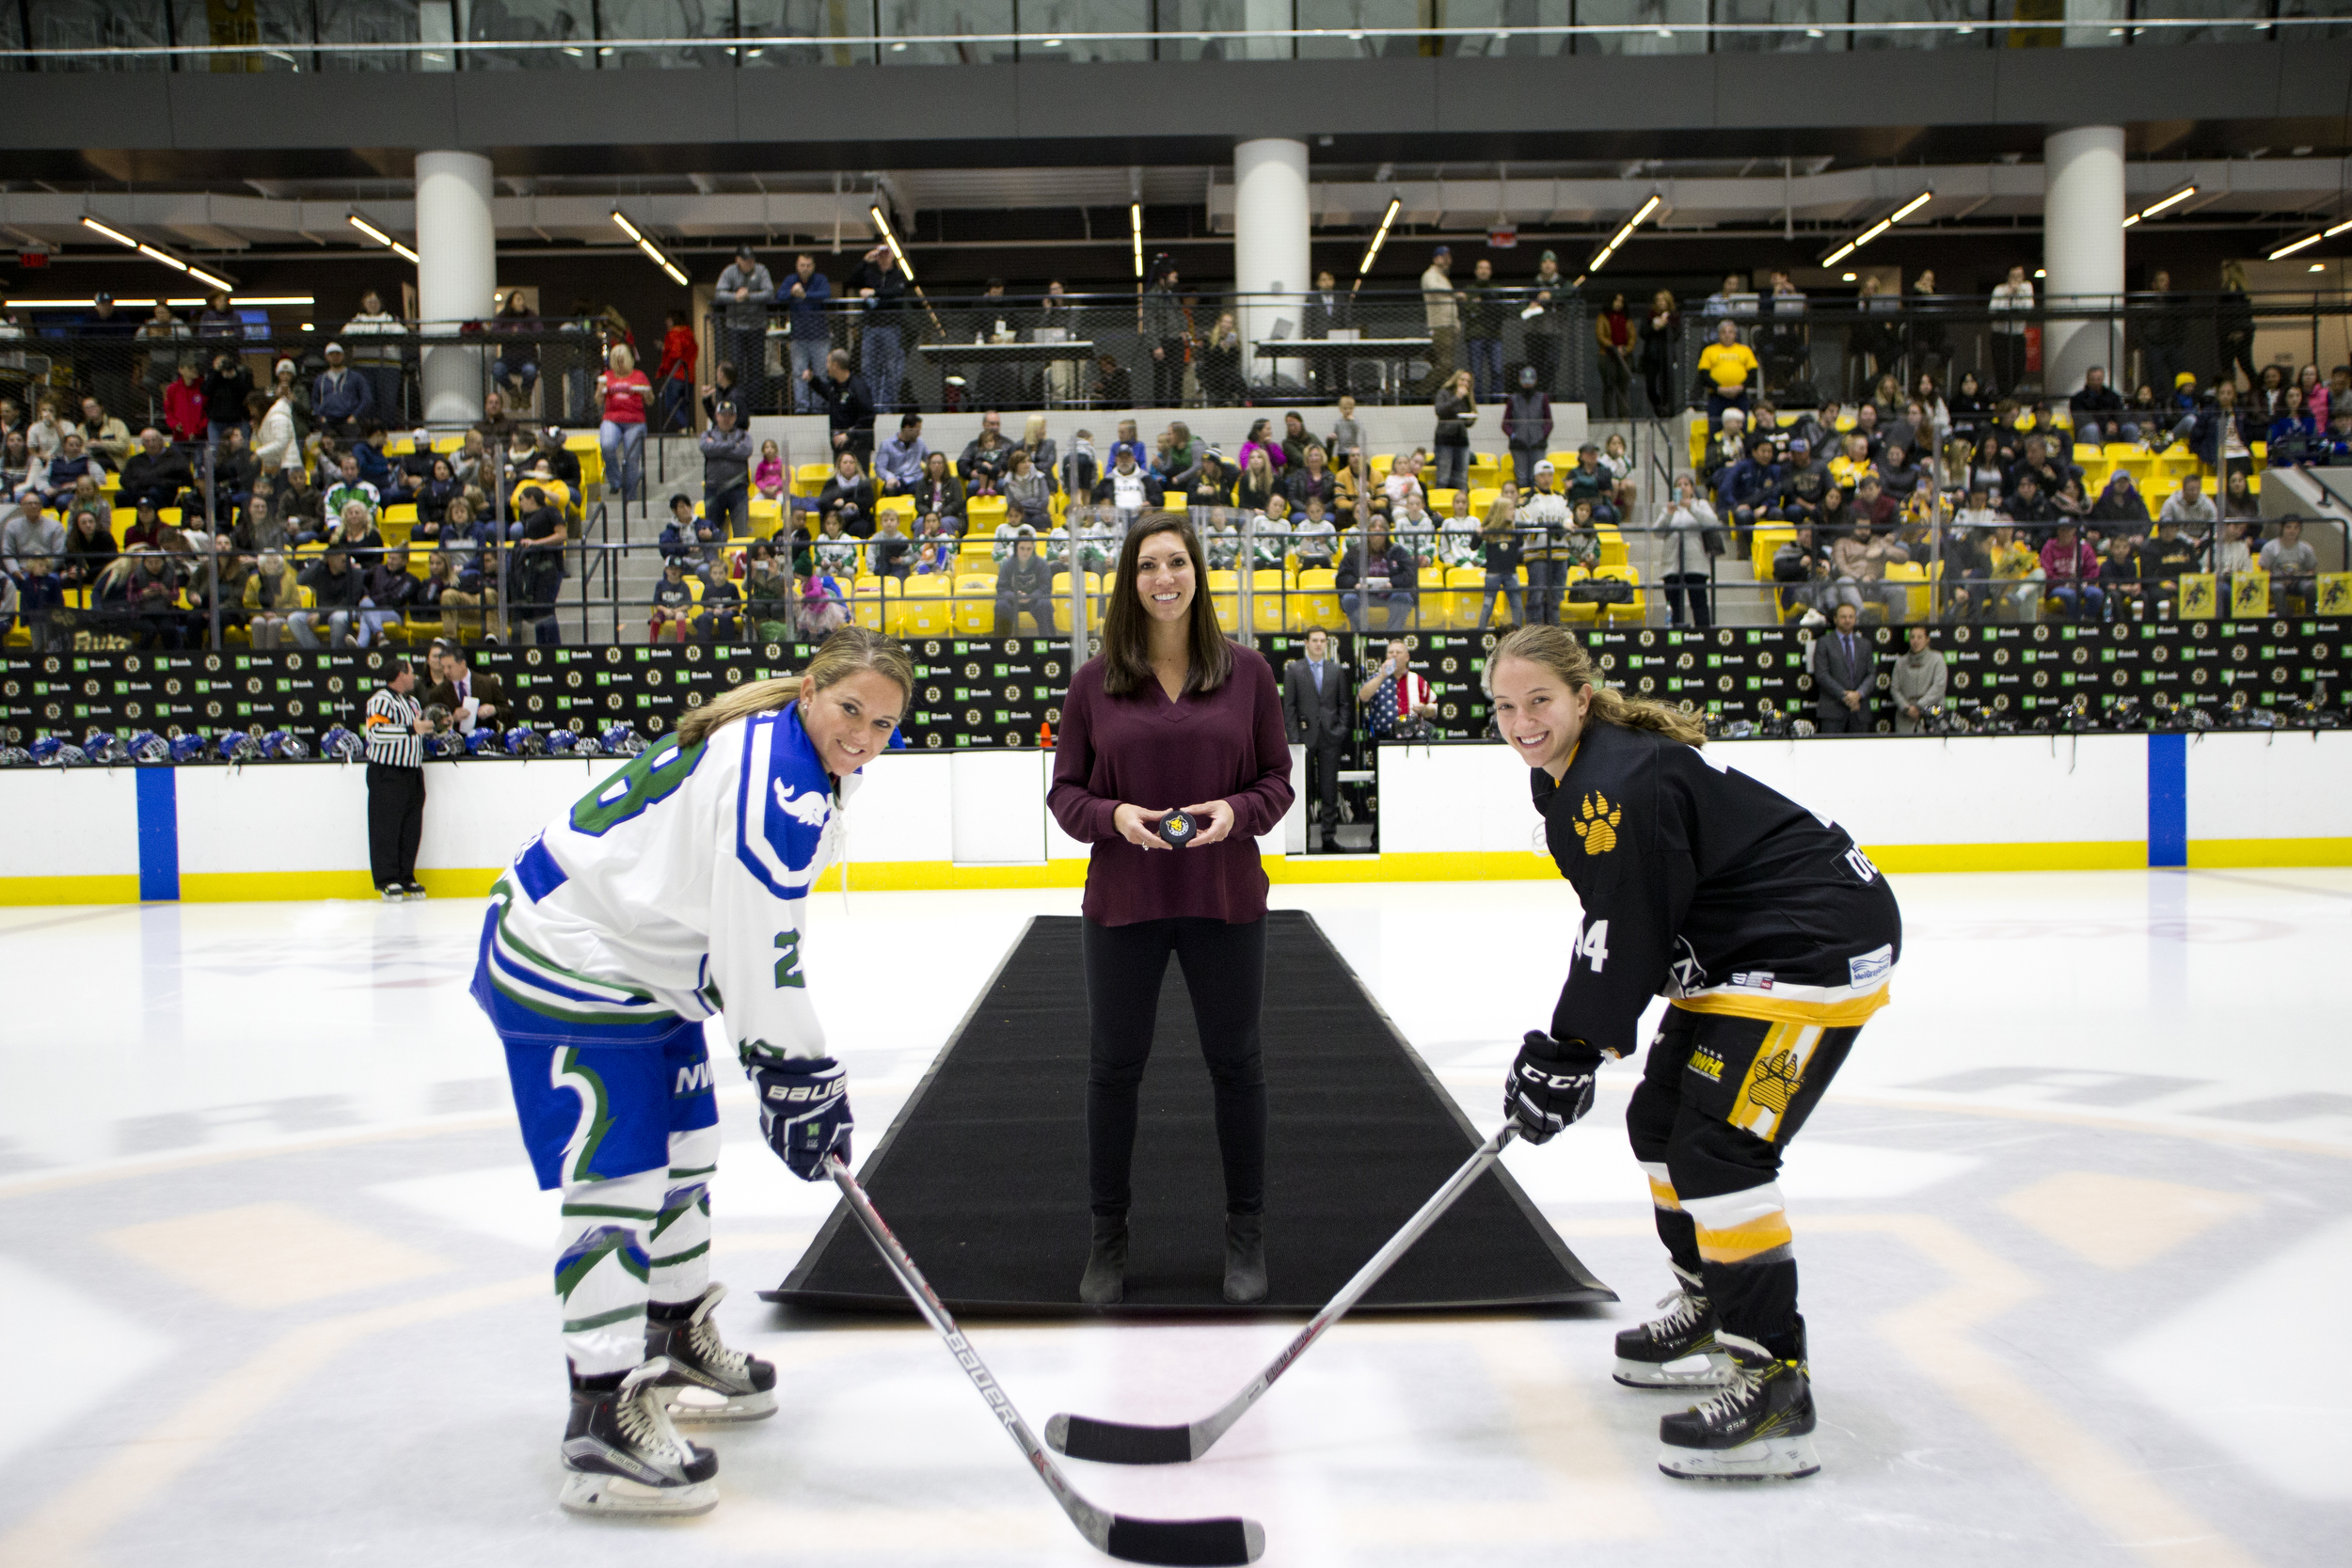 NWHL: Q&A With Hayley Moore On Her Career In Hockey